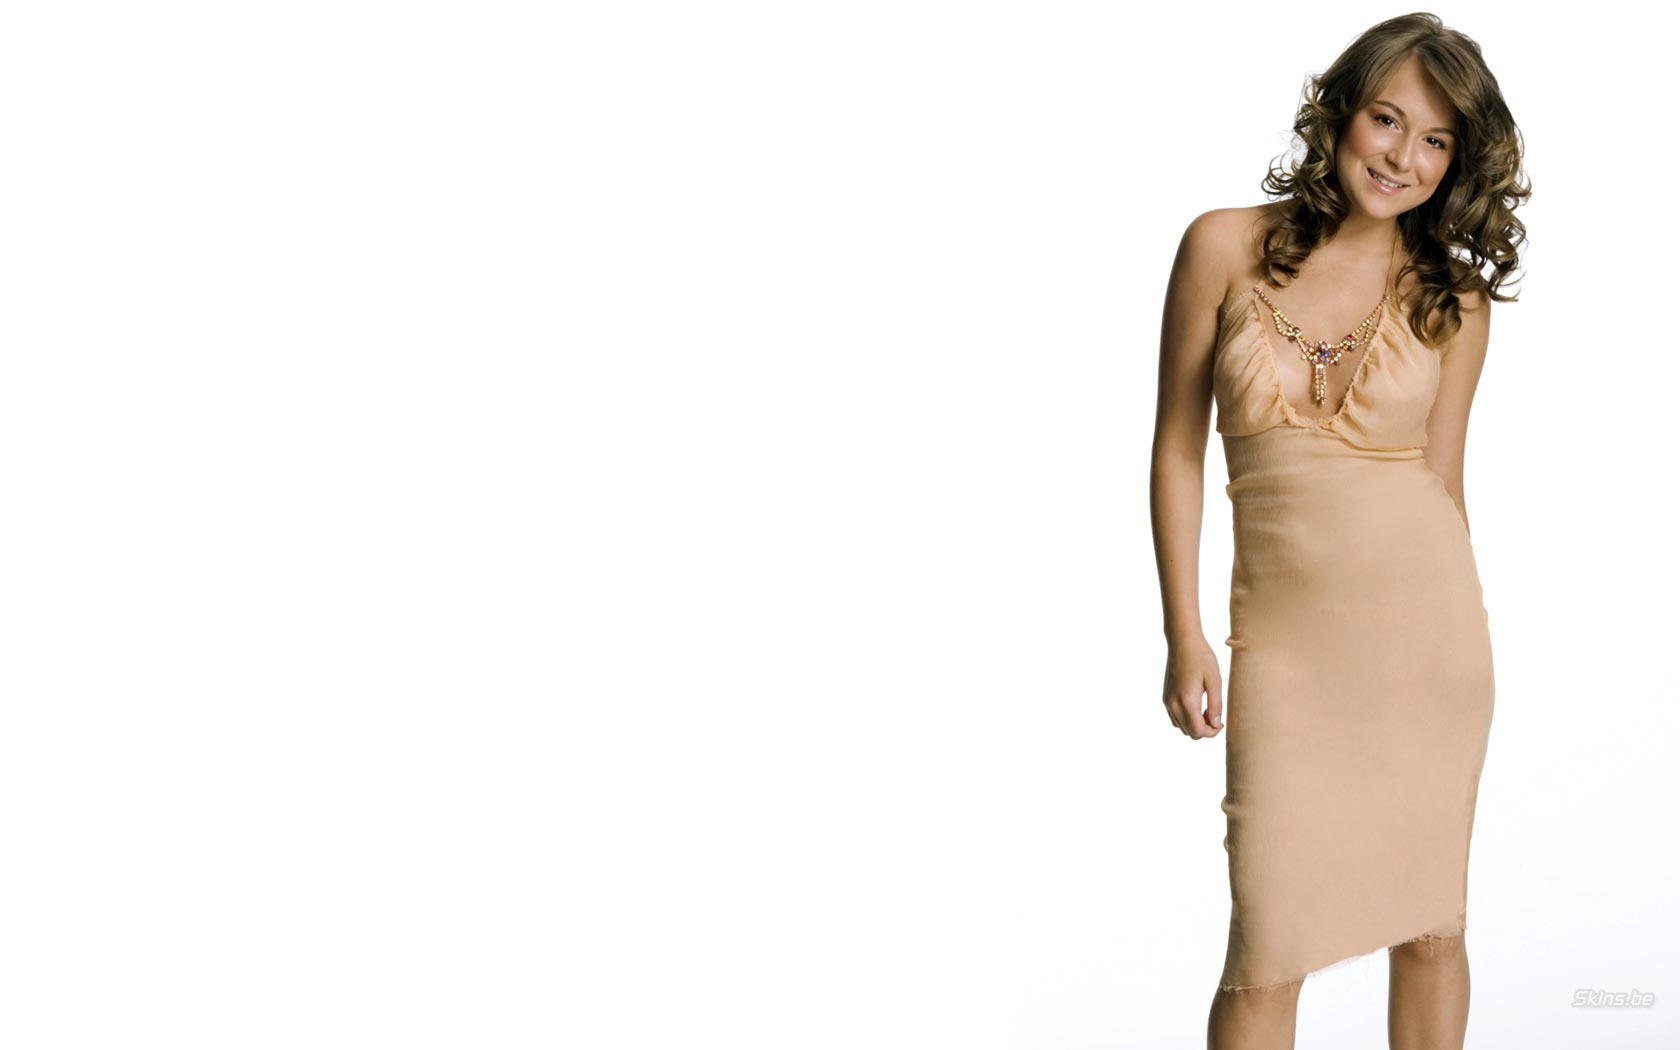 Alexa Vega wallpaper (#20139)